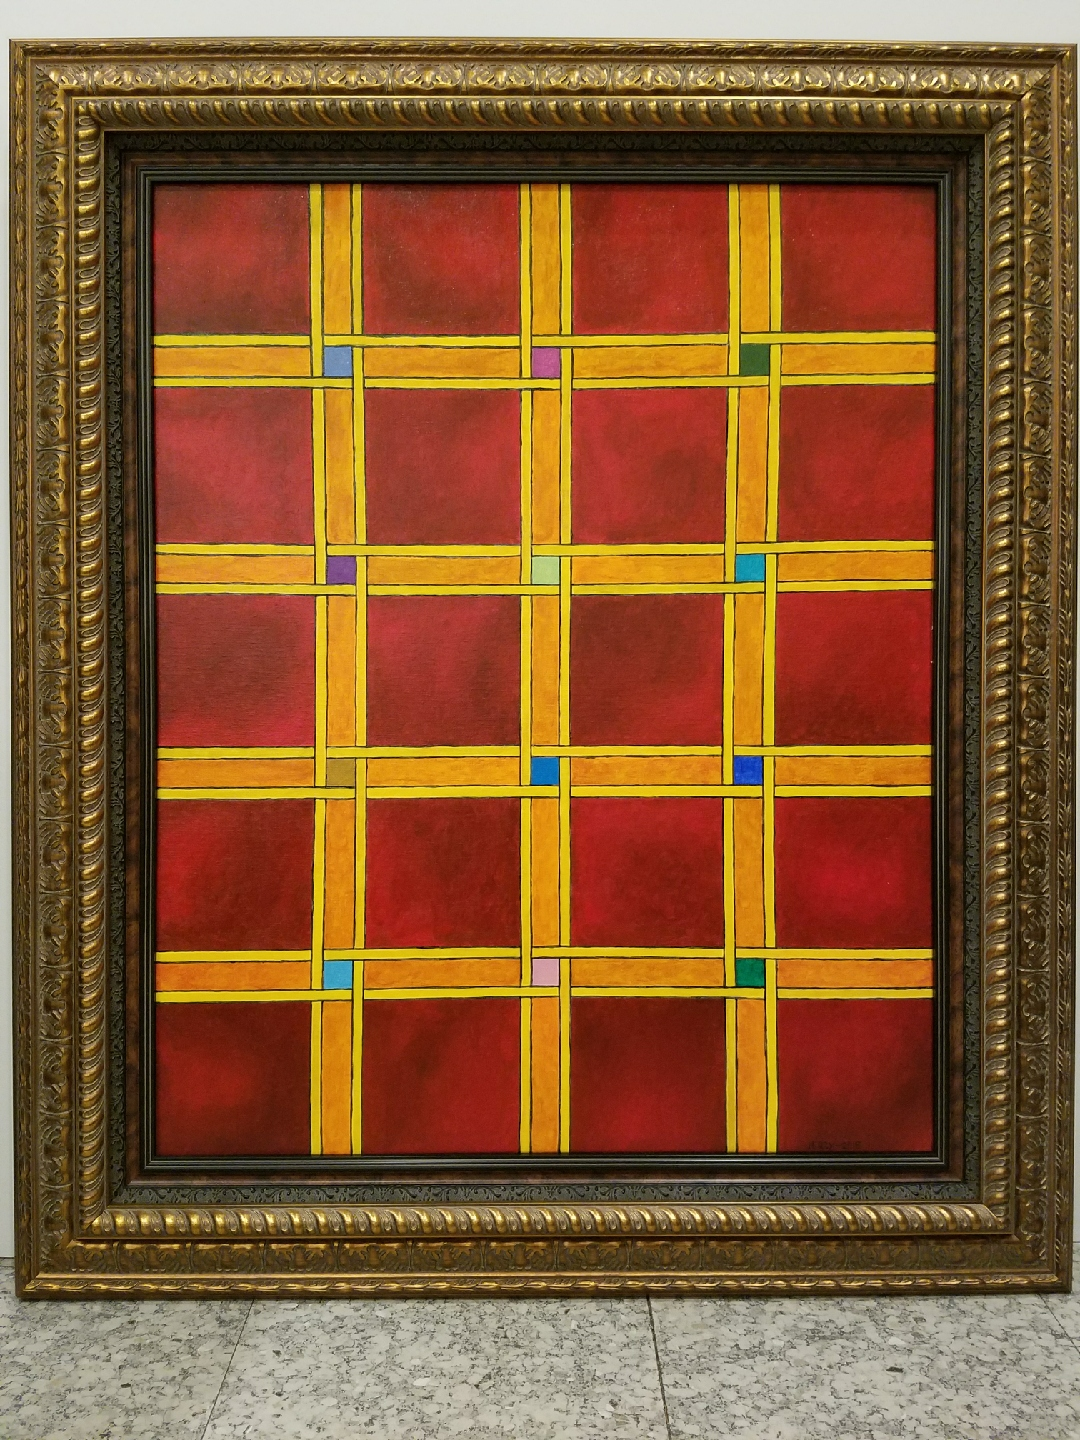 Impressions of Gingham artwork by Jerzy Almi Tufman - art listed for sale on Artplode